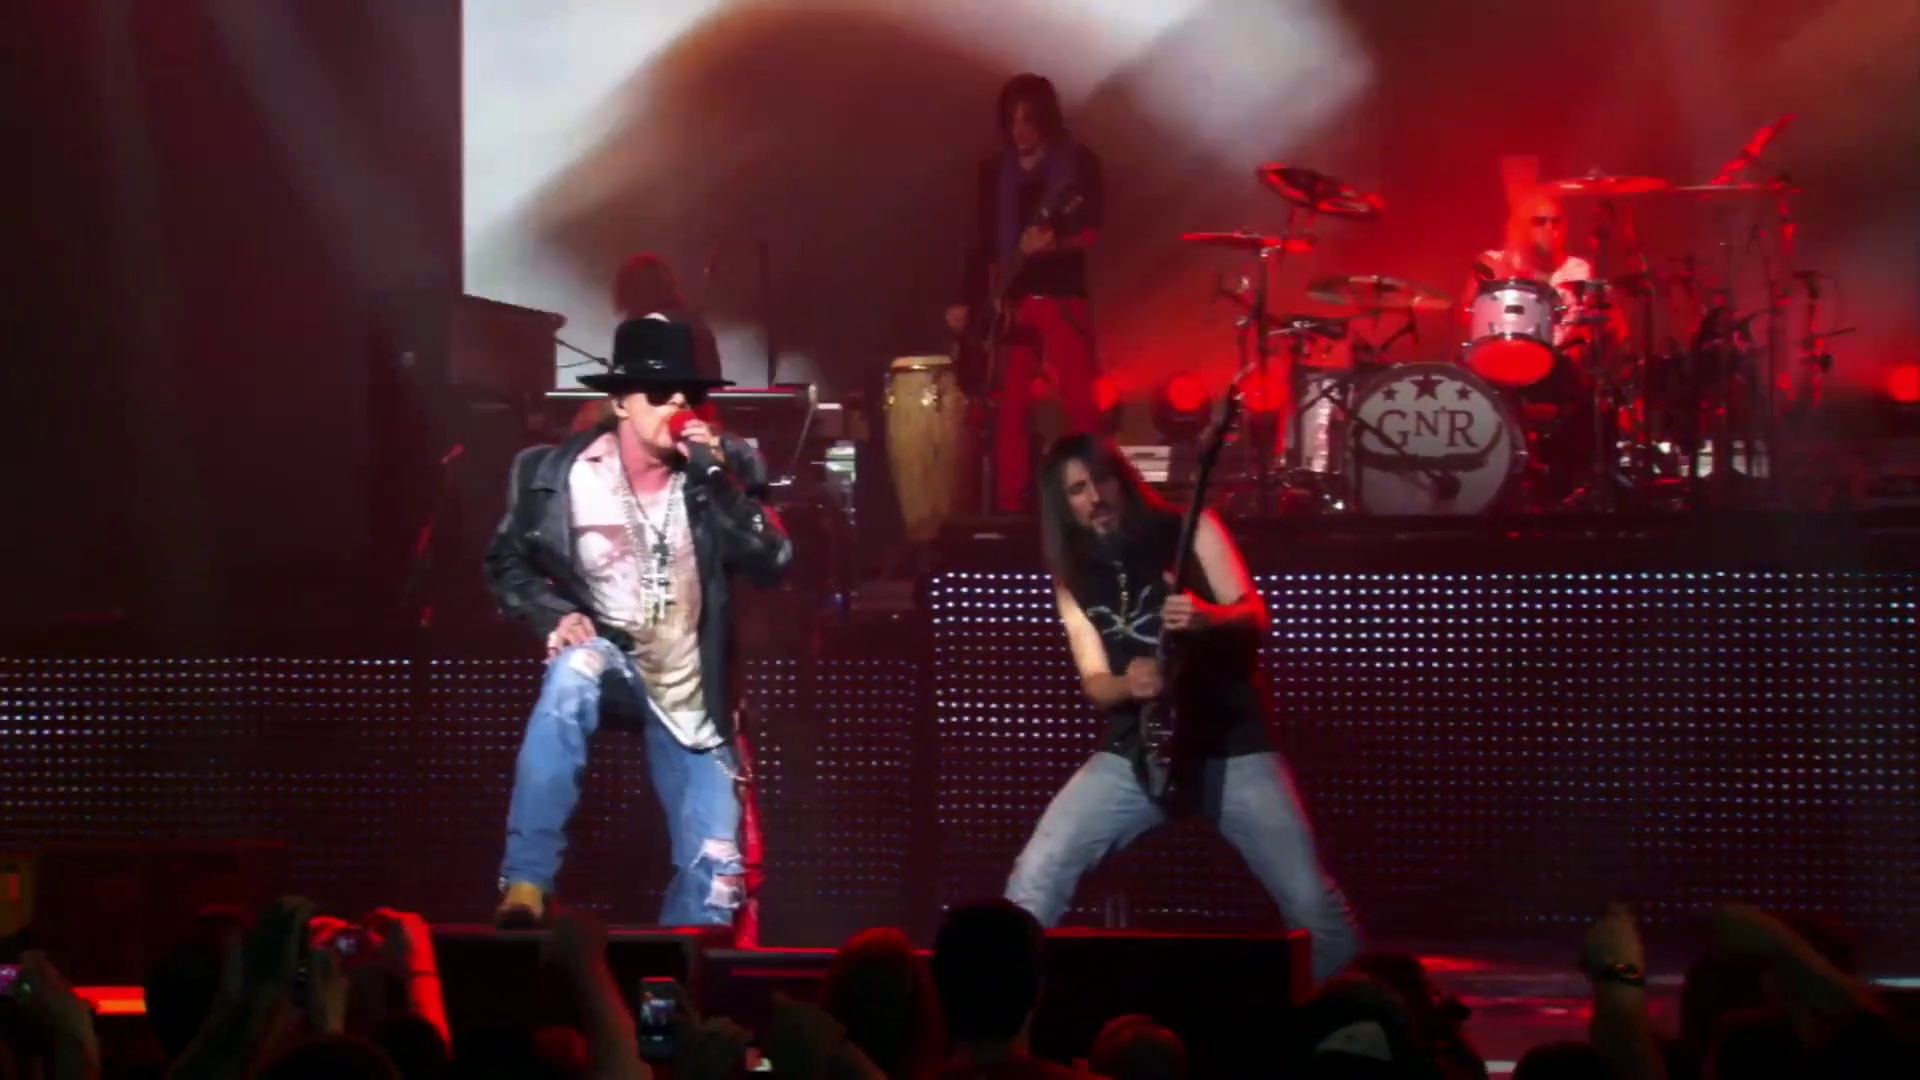 Estranged – Guns N' Roses (live)